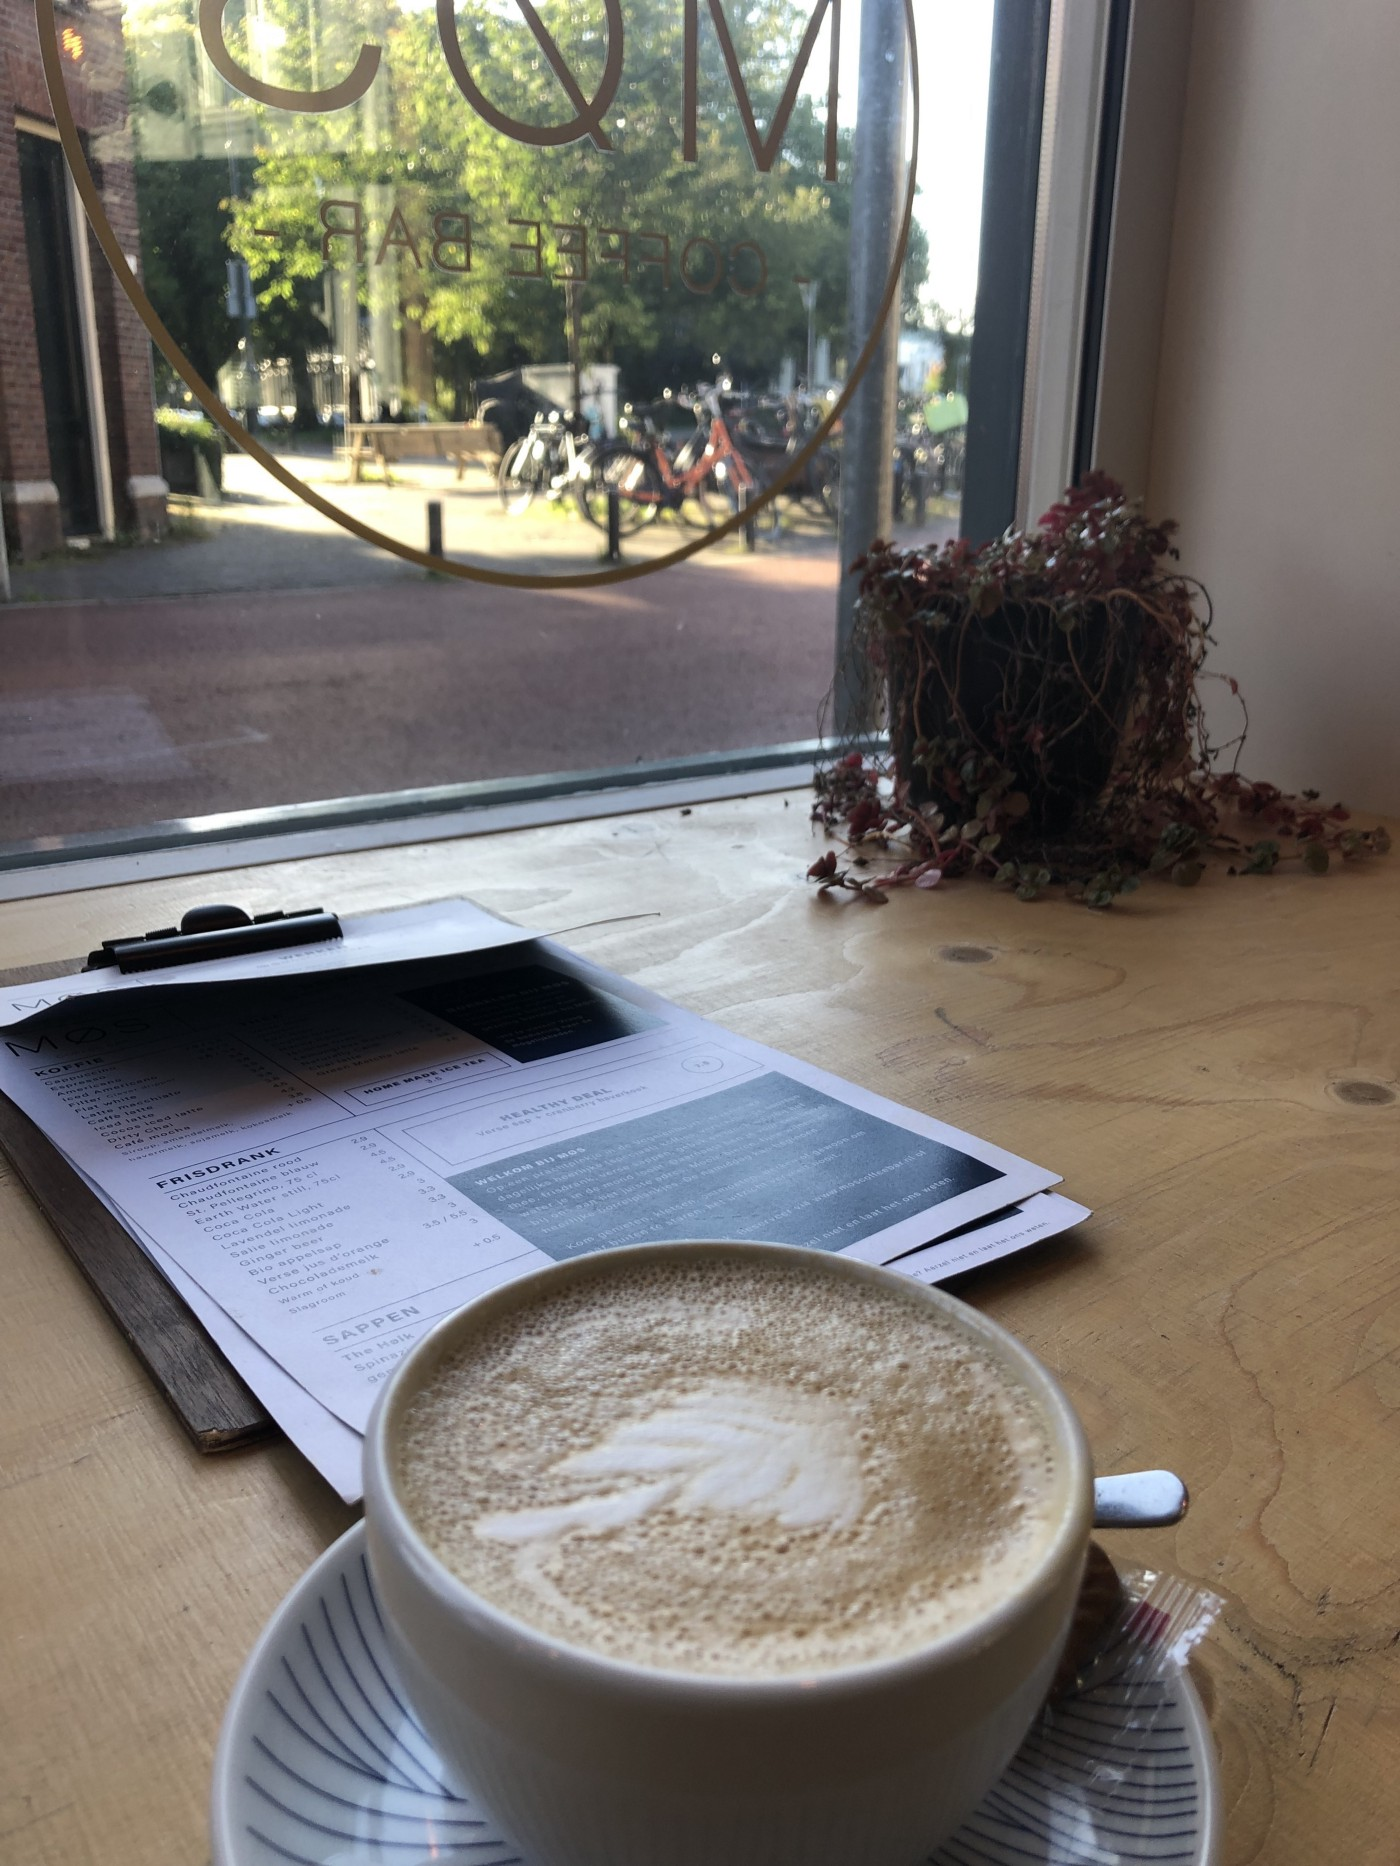 a view outside the cafe window with a coffee in the foreground